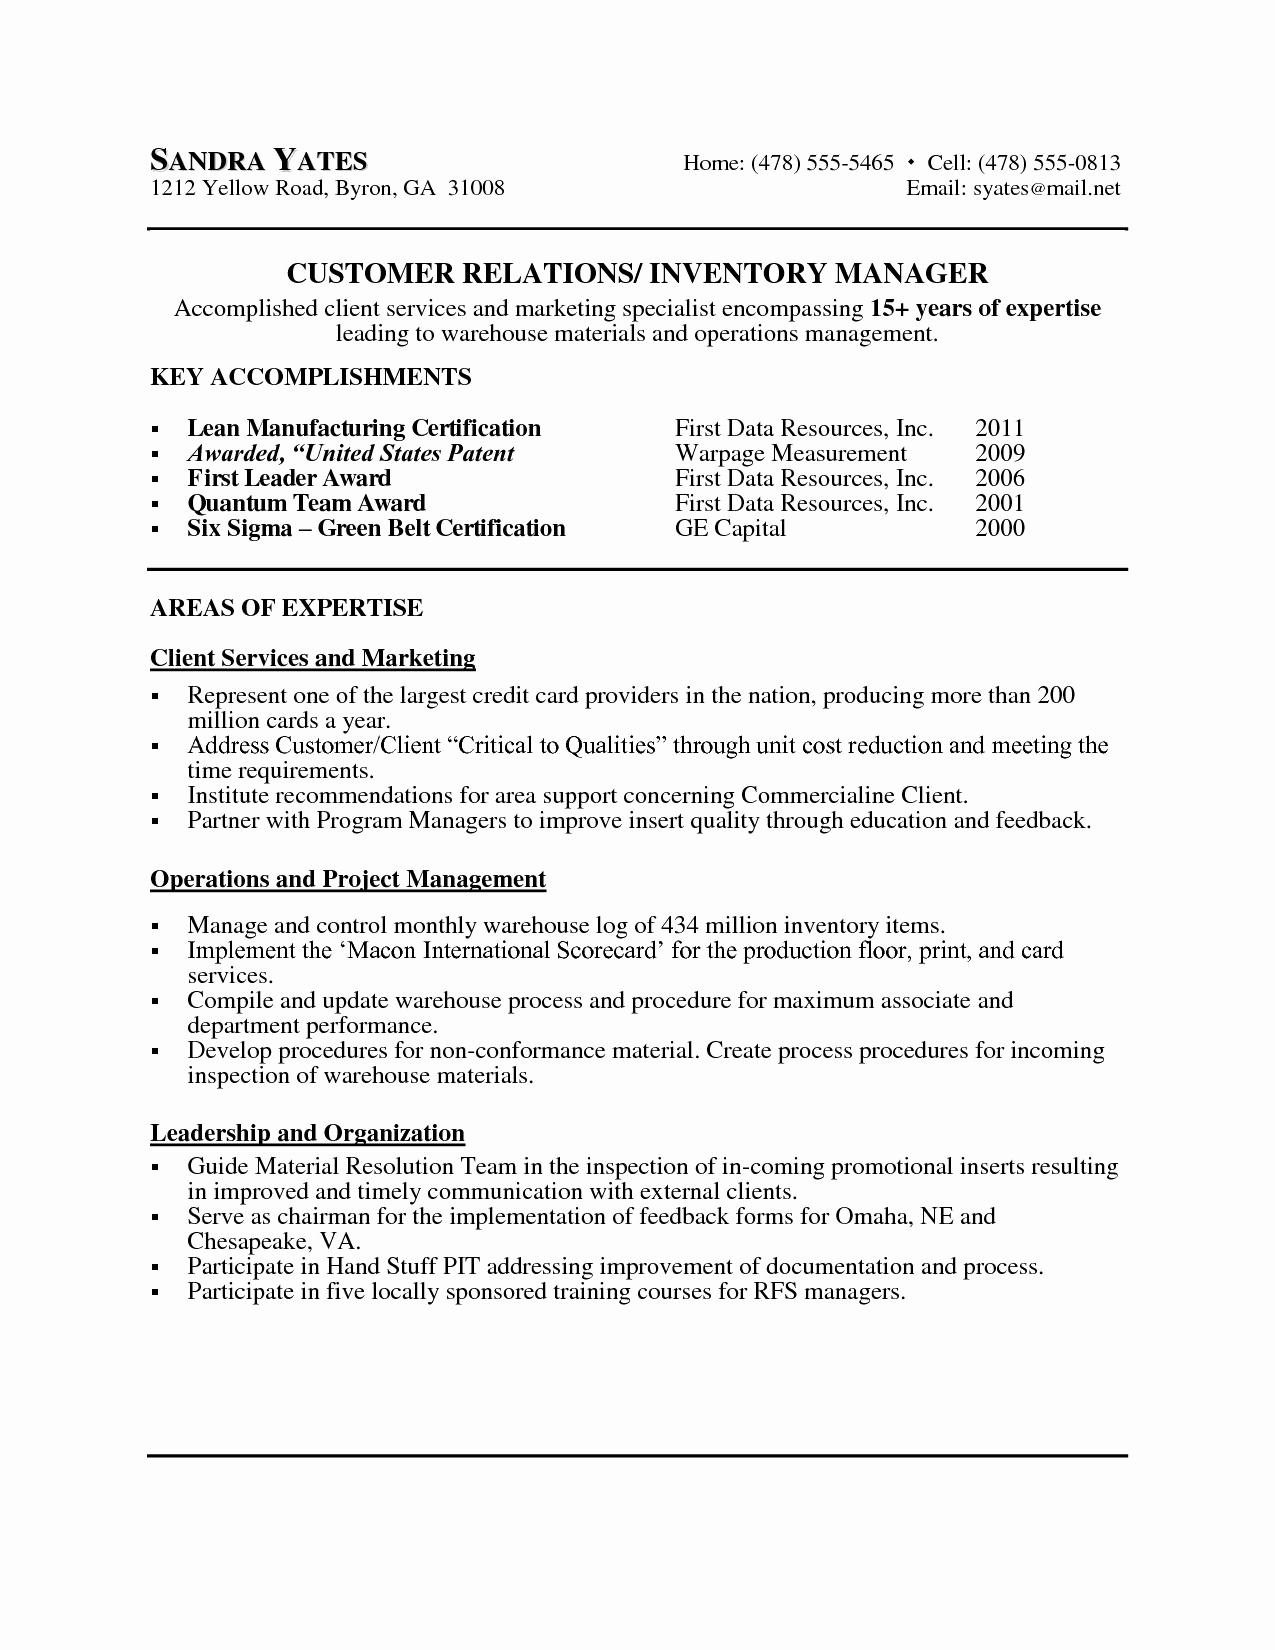 Yellow Letter Template - Cover Letter for Employment Agency Unique American Resume Sample New